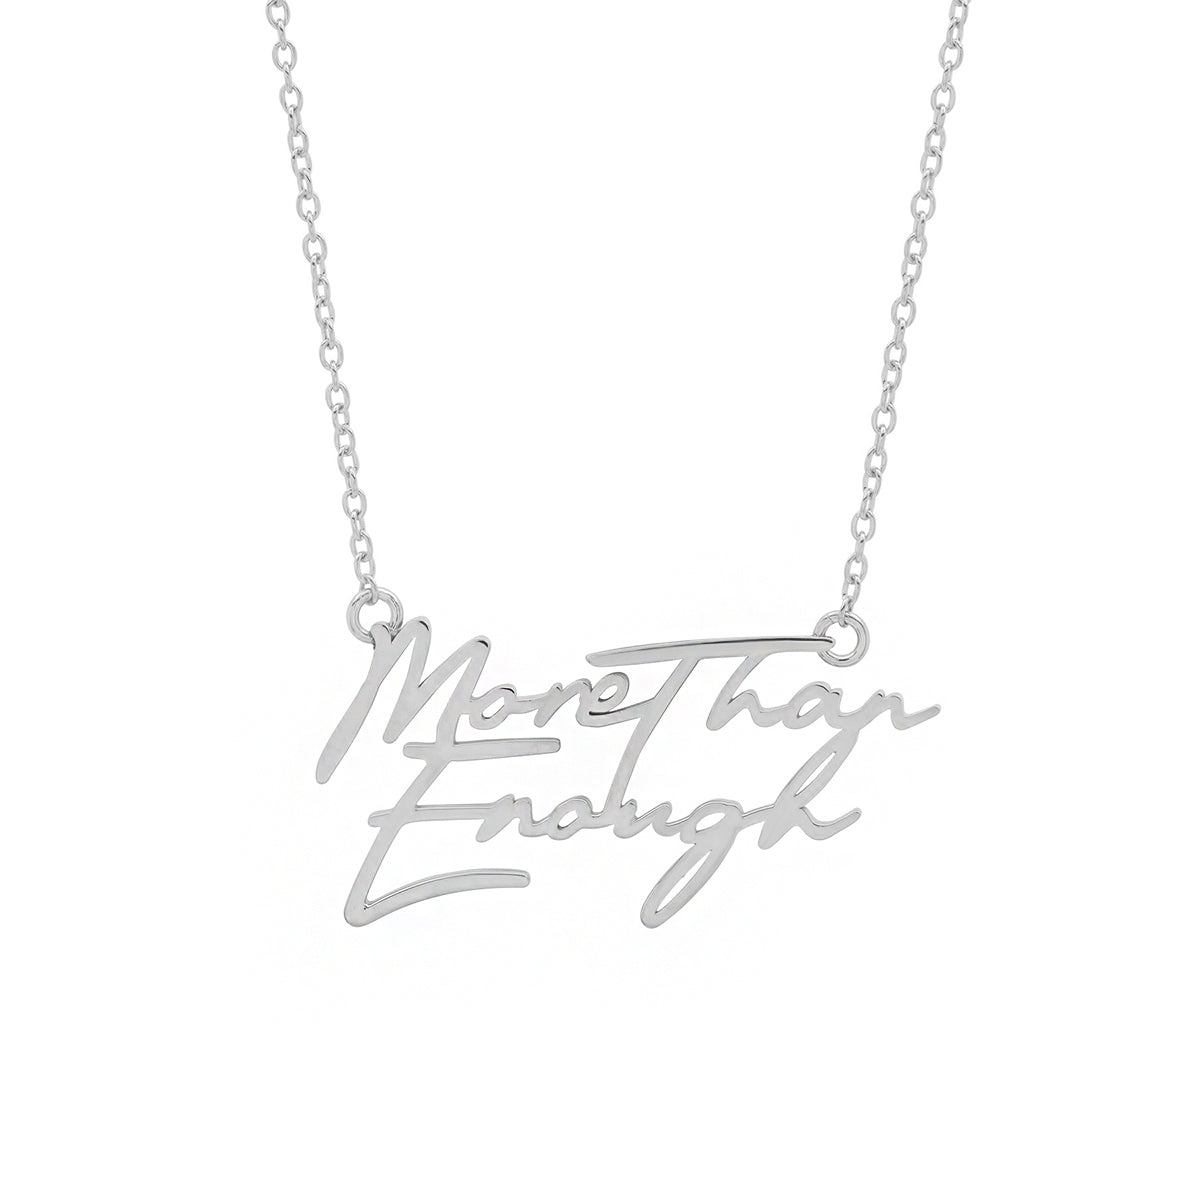 More Than Enough Necklace - Silver